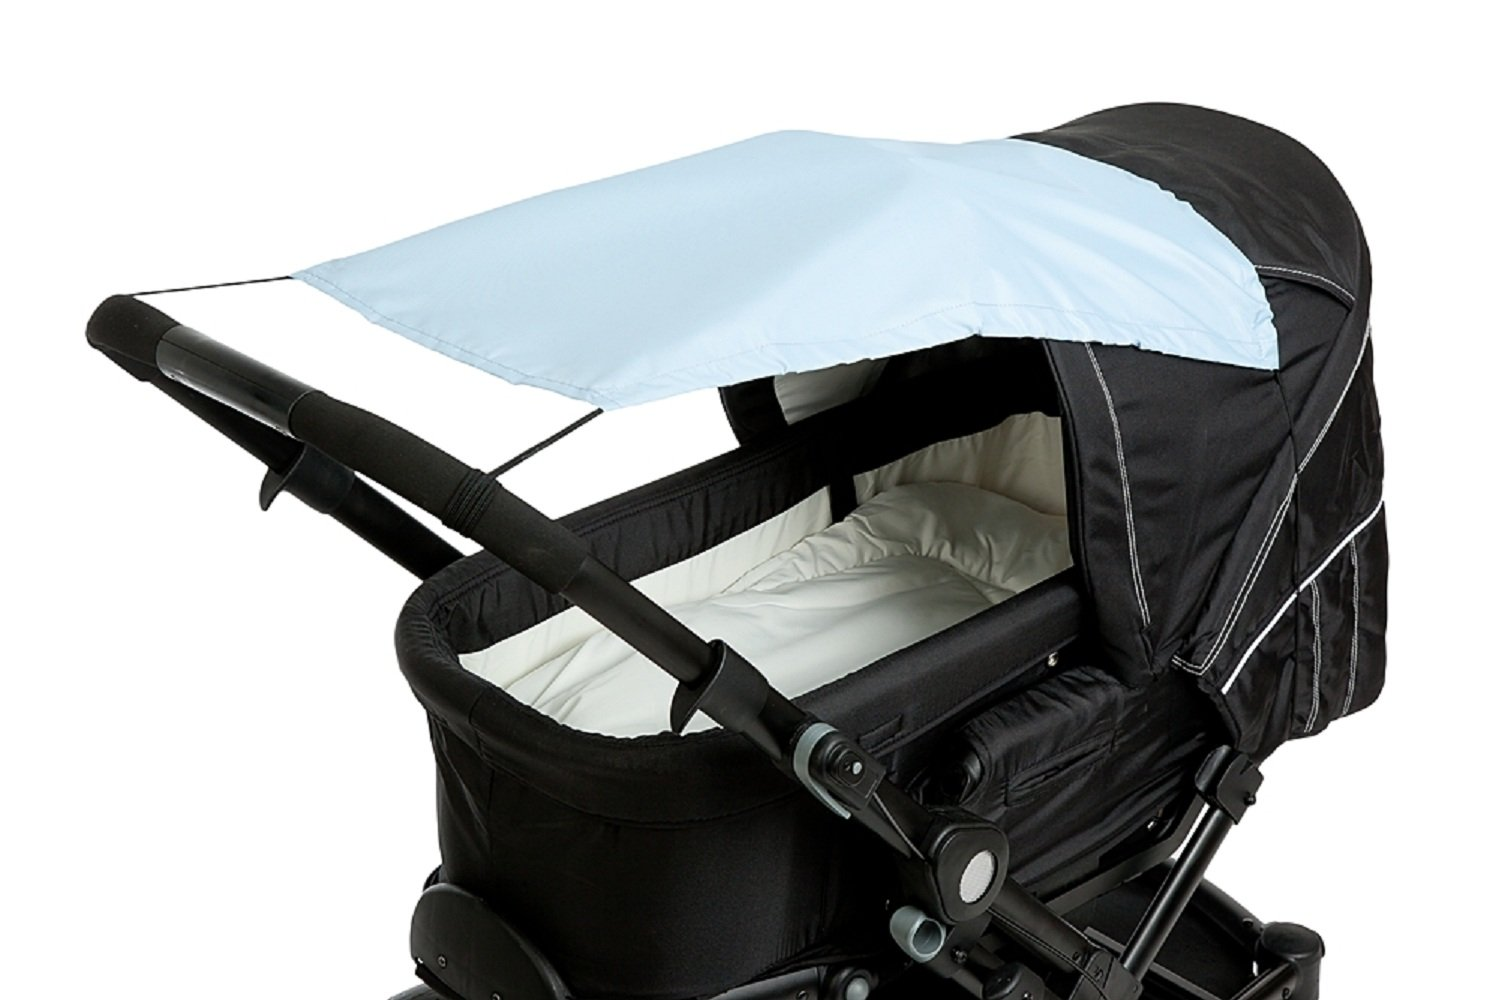 Altabebe Al71-13 Universal Sunshade For Pram And Stroller With Anti-Uv Protection 50 Plus Light Blue